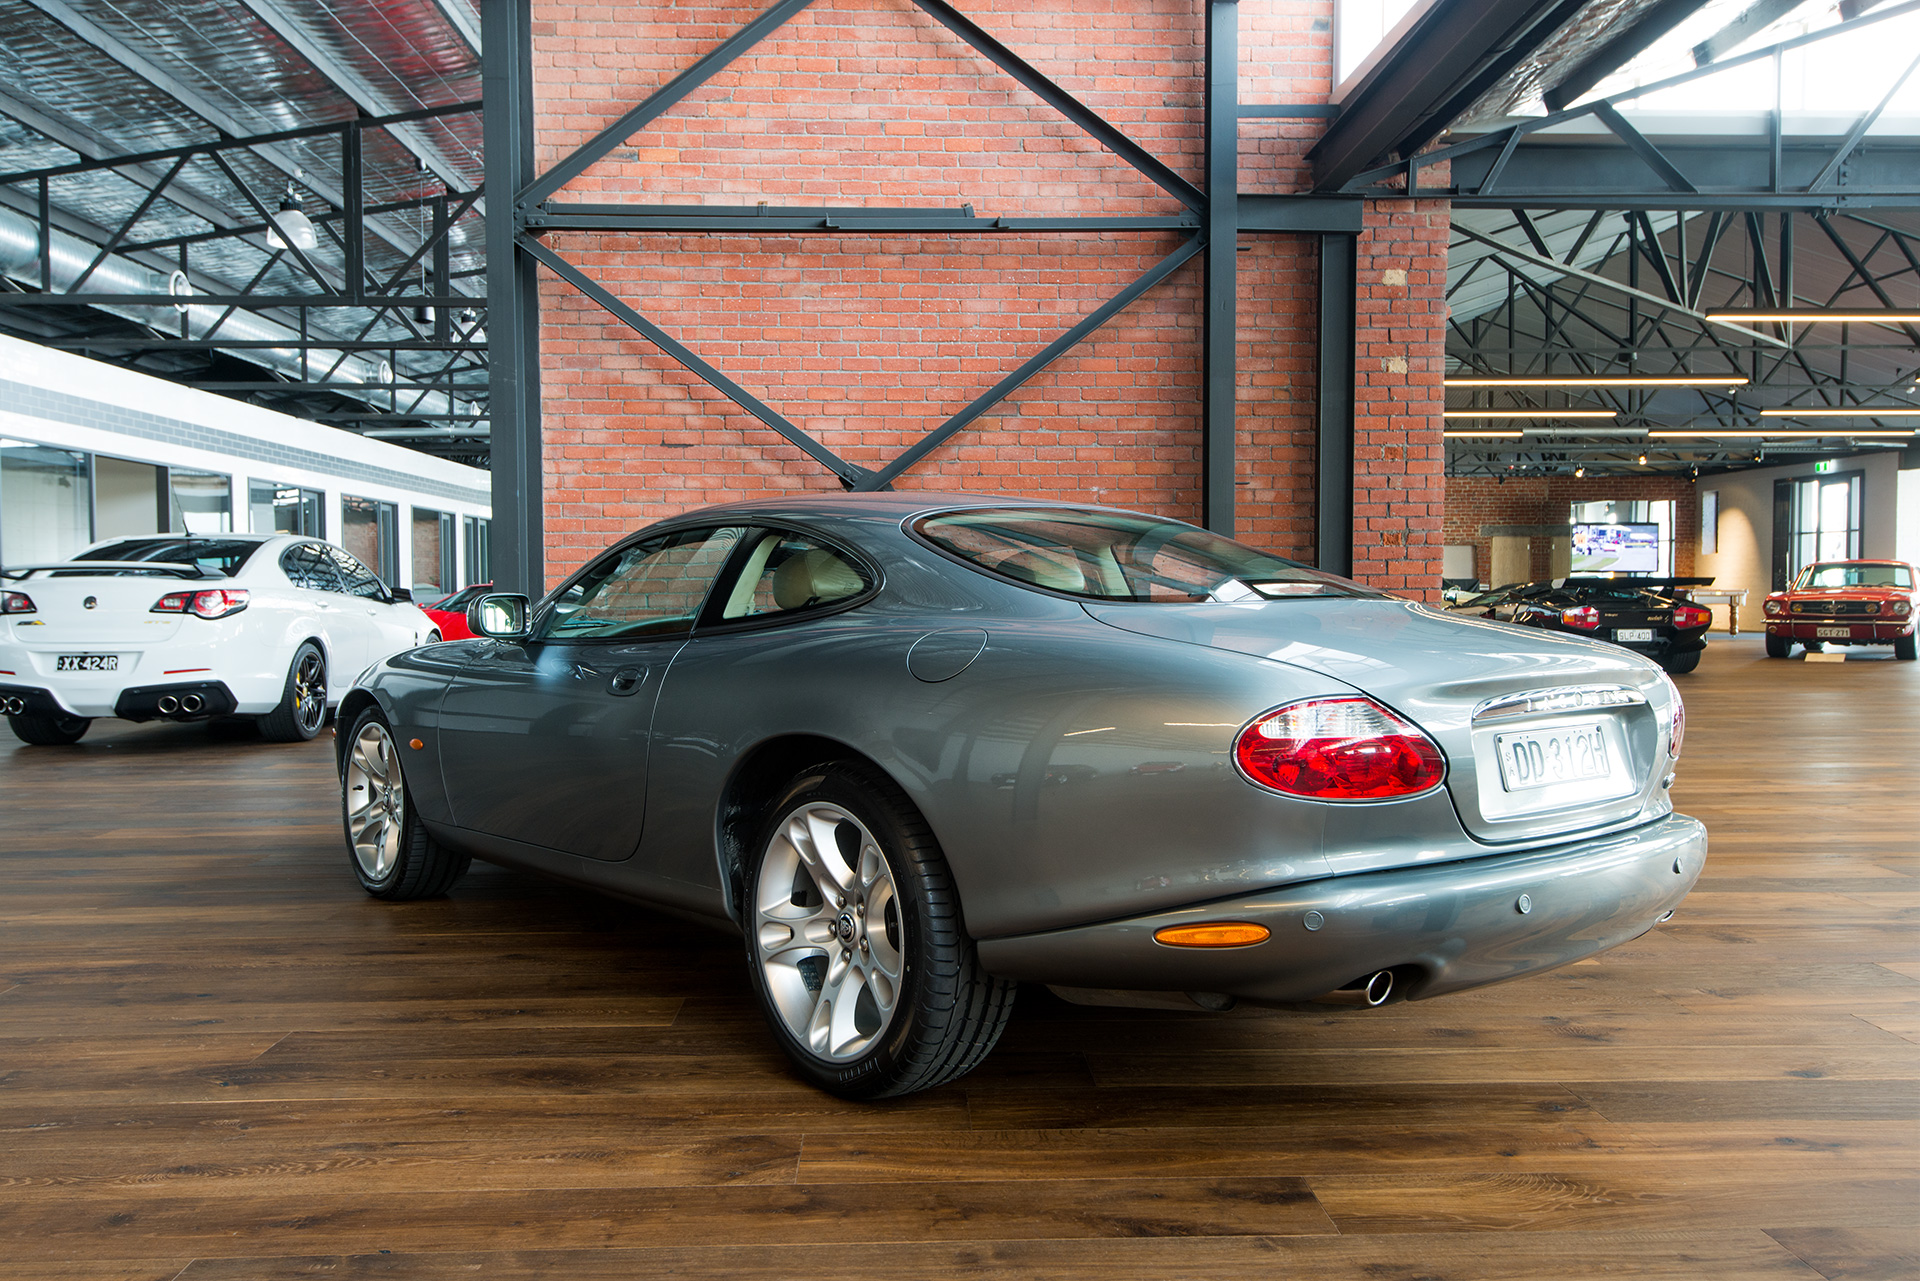 2003 jaguar xk8 coupe richmonds classic and prestige cars storage and sales adelaide. Black Bedroom Furniture Sets. Home Design Ideas